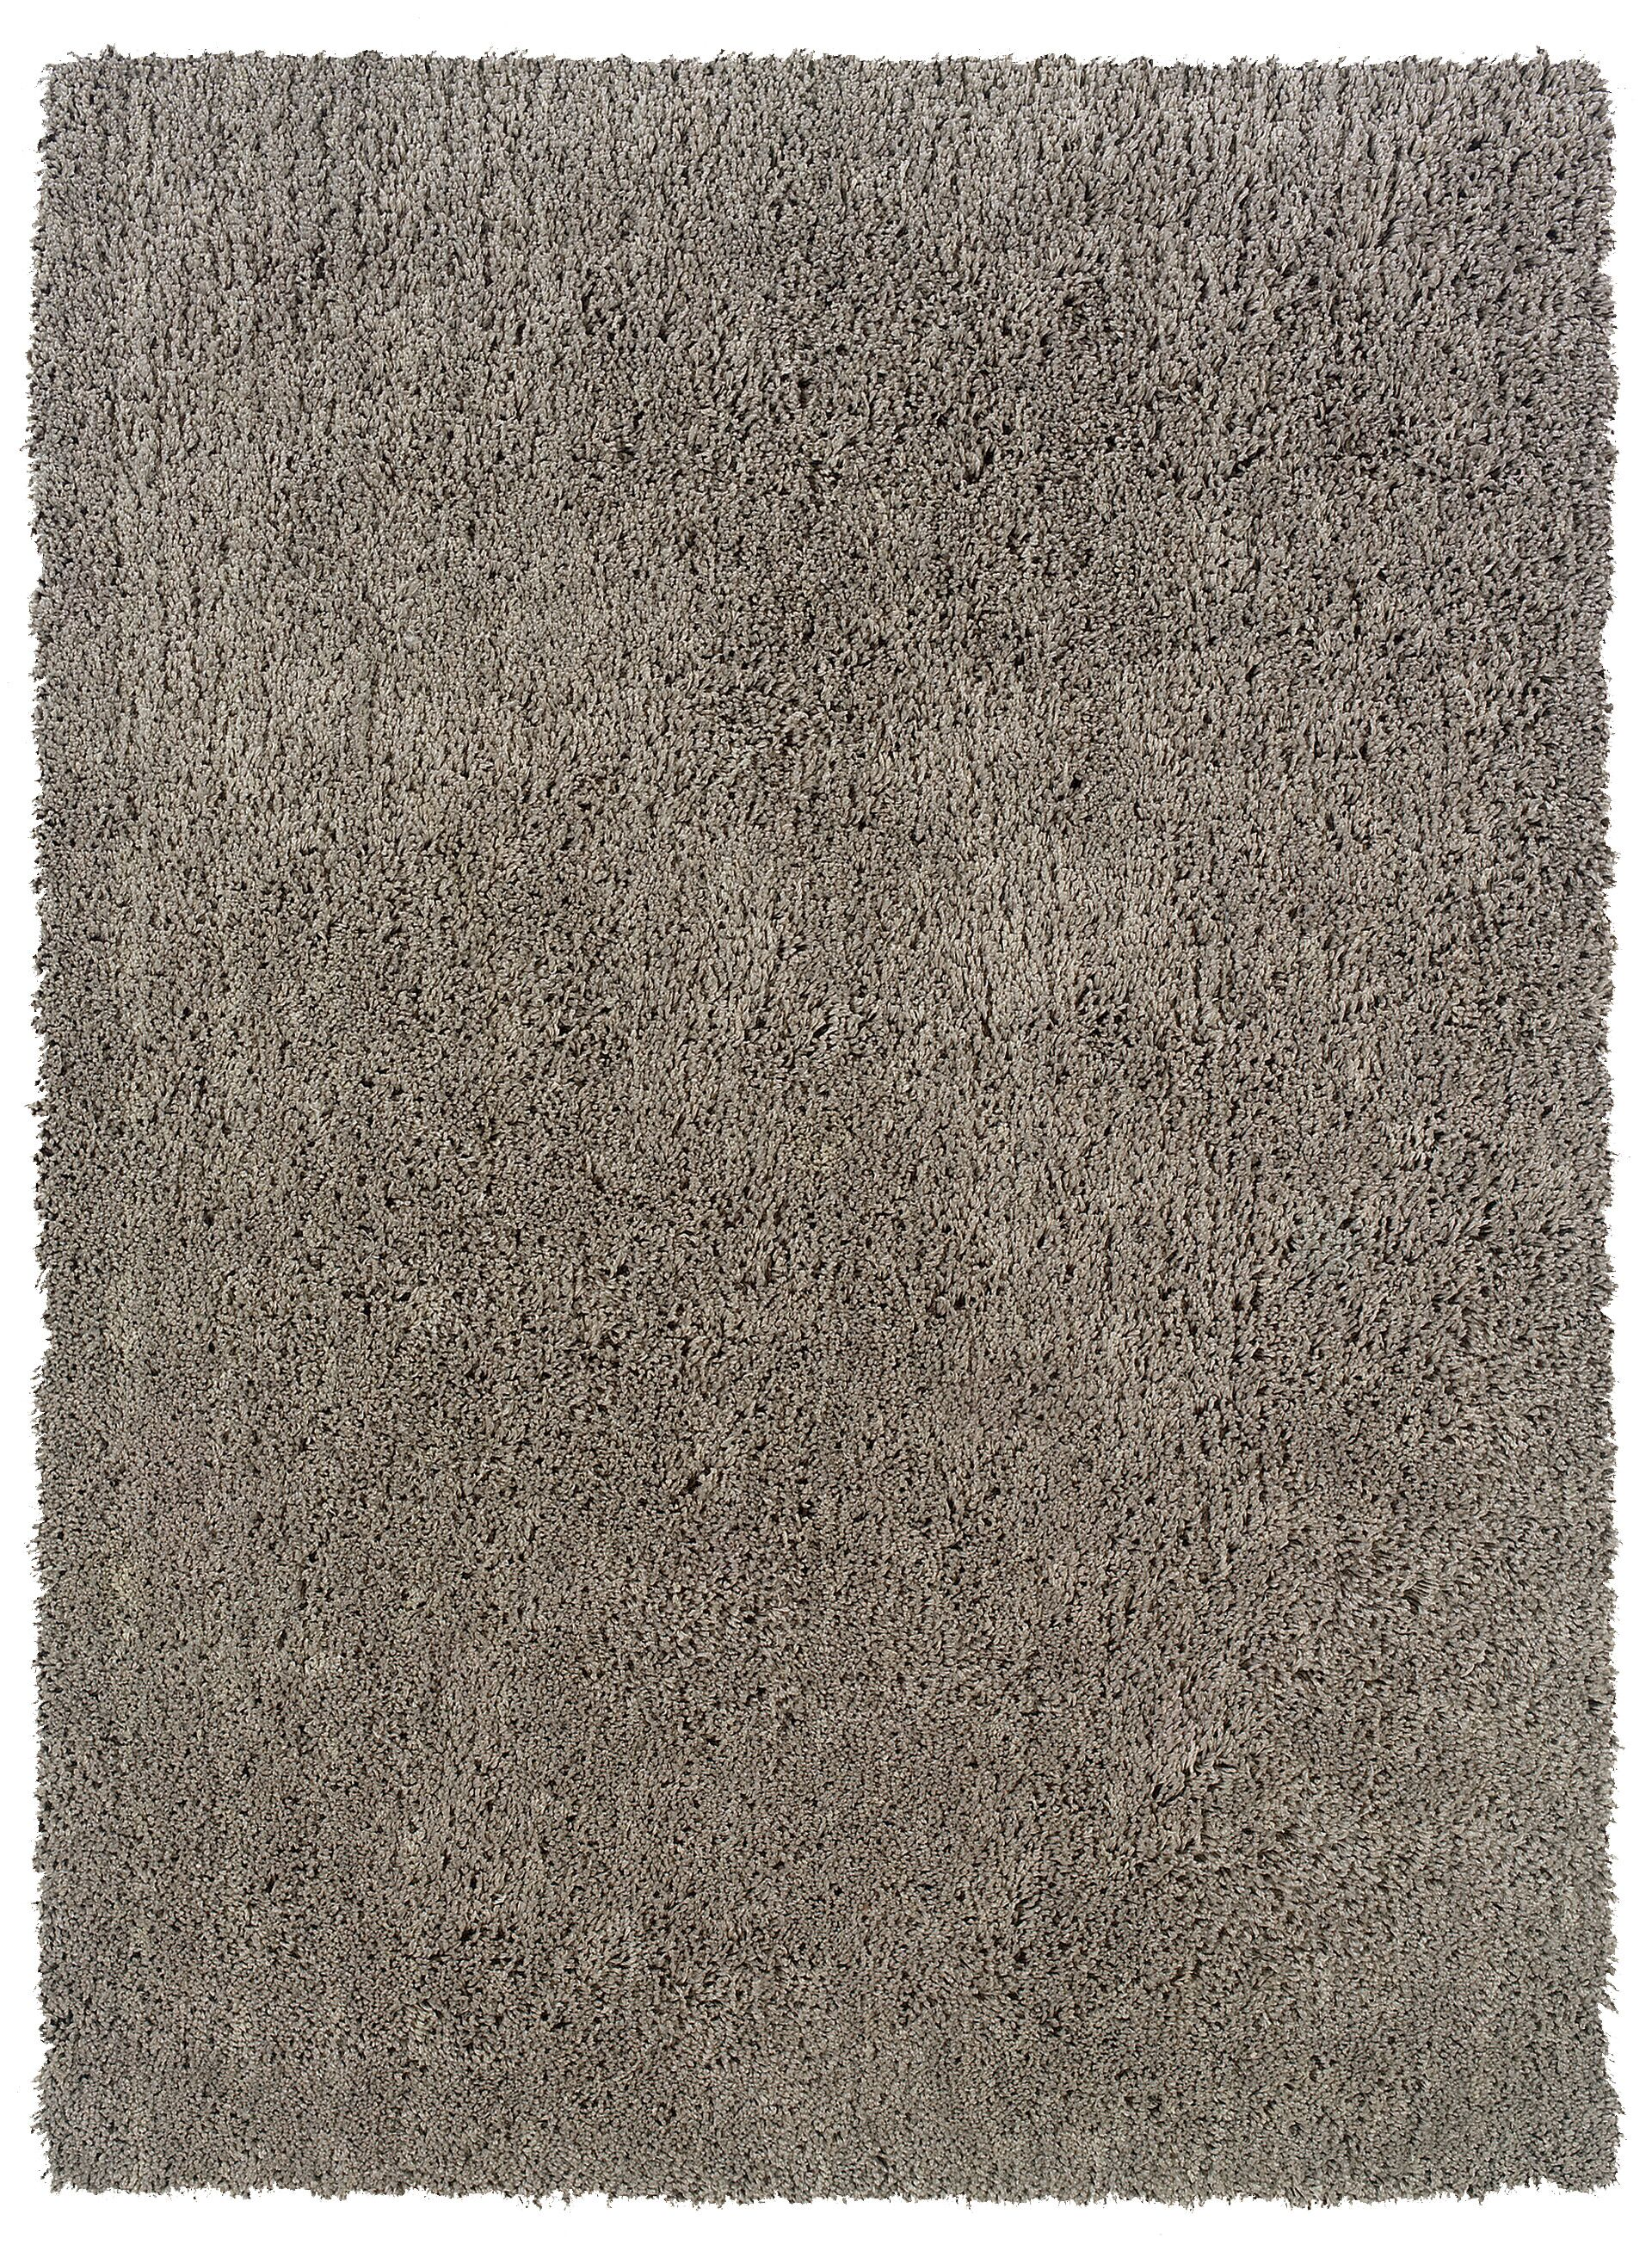 Hand-Woven Gray Area Rug Rug Size: Rectangle 8' x 10'